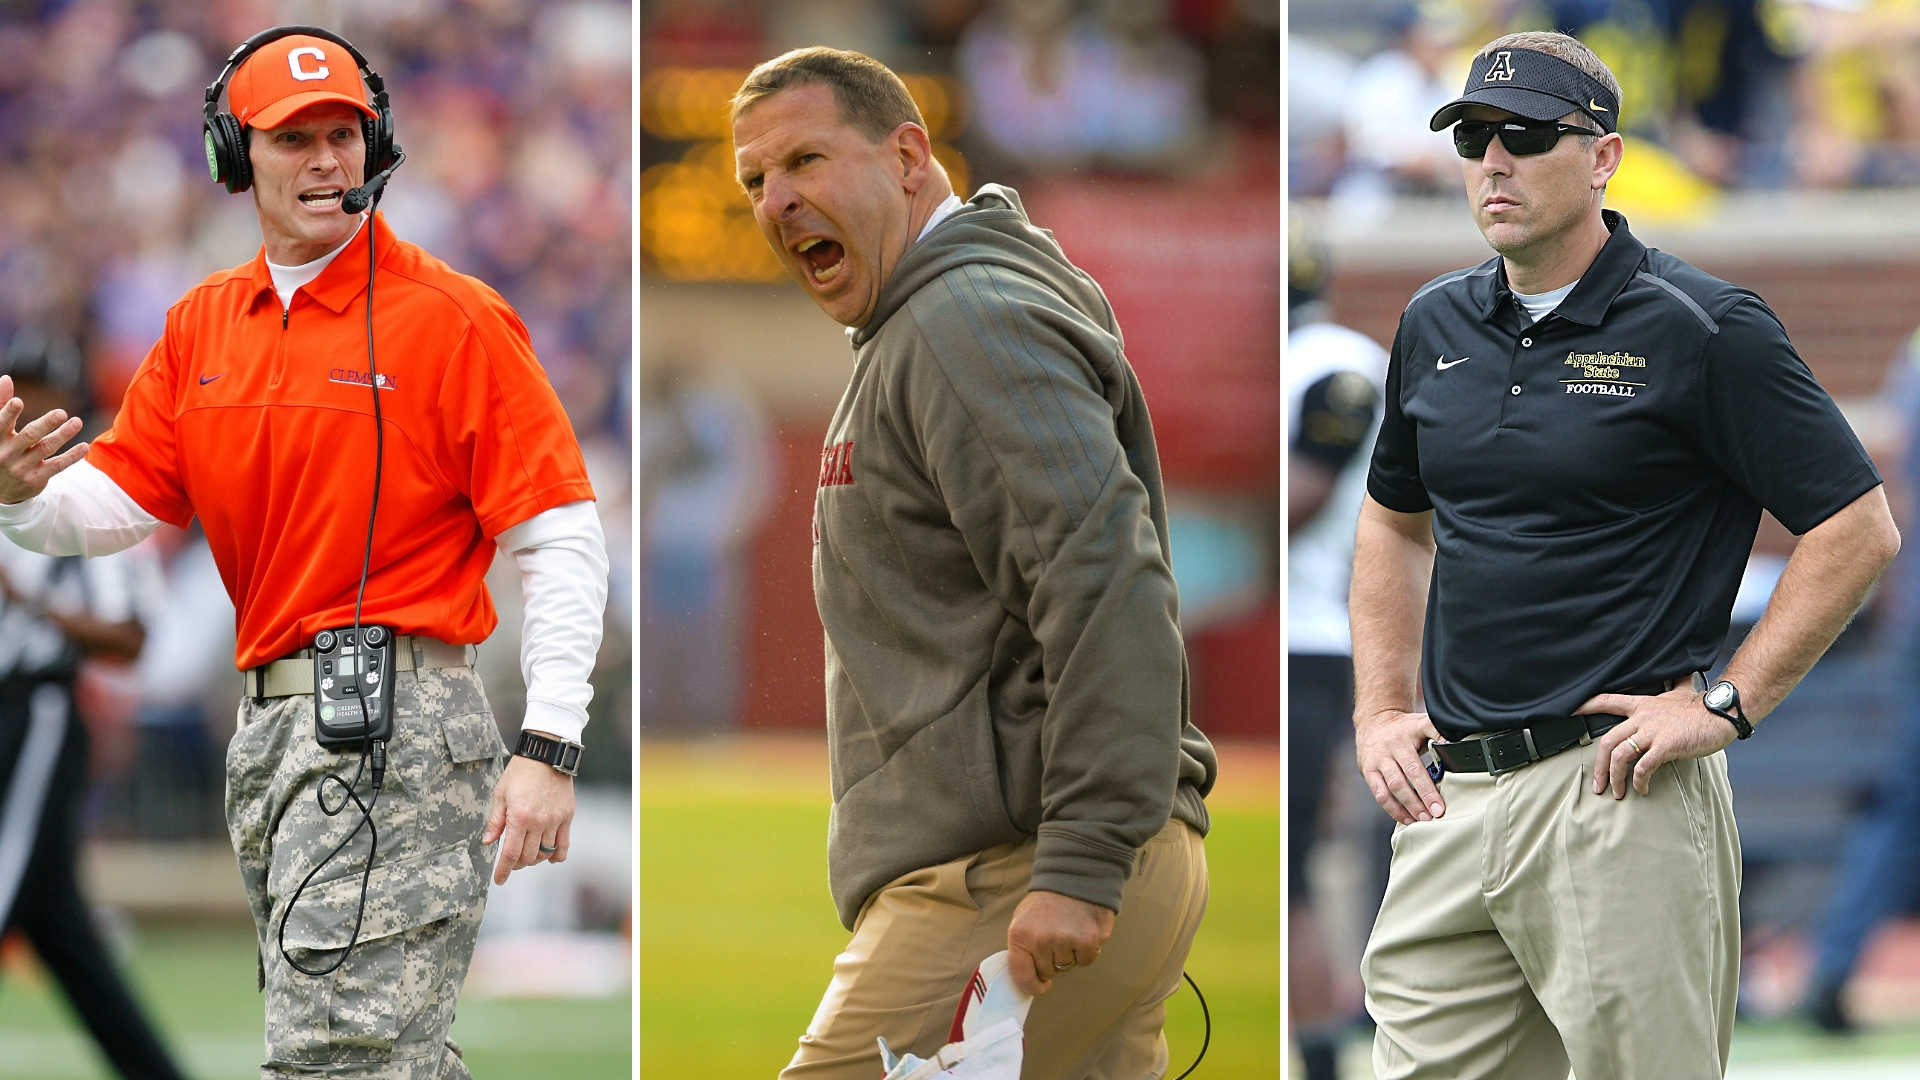 Brent-venables-bo-pelini-scott-satterfield-072117-getty-ftr_1b7ki6hewfi2z1xa9gereo38mm